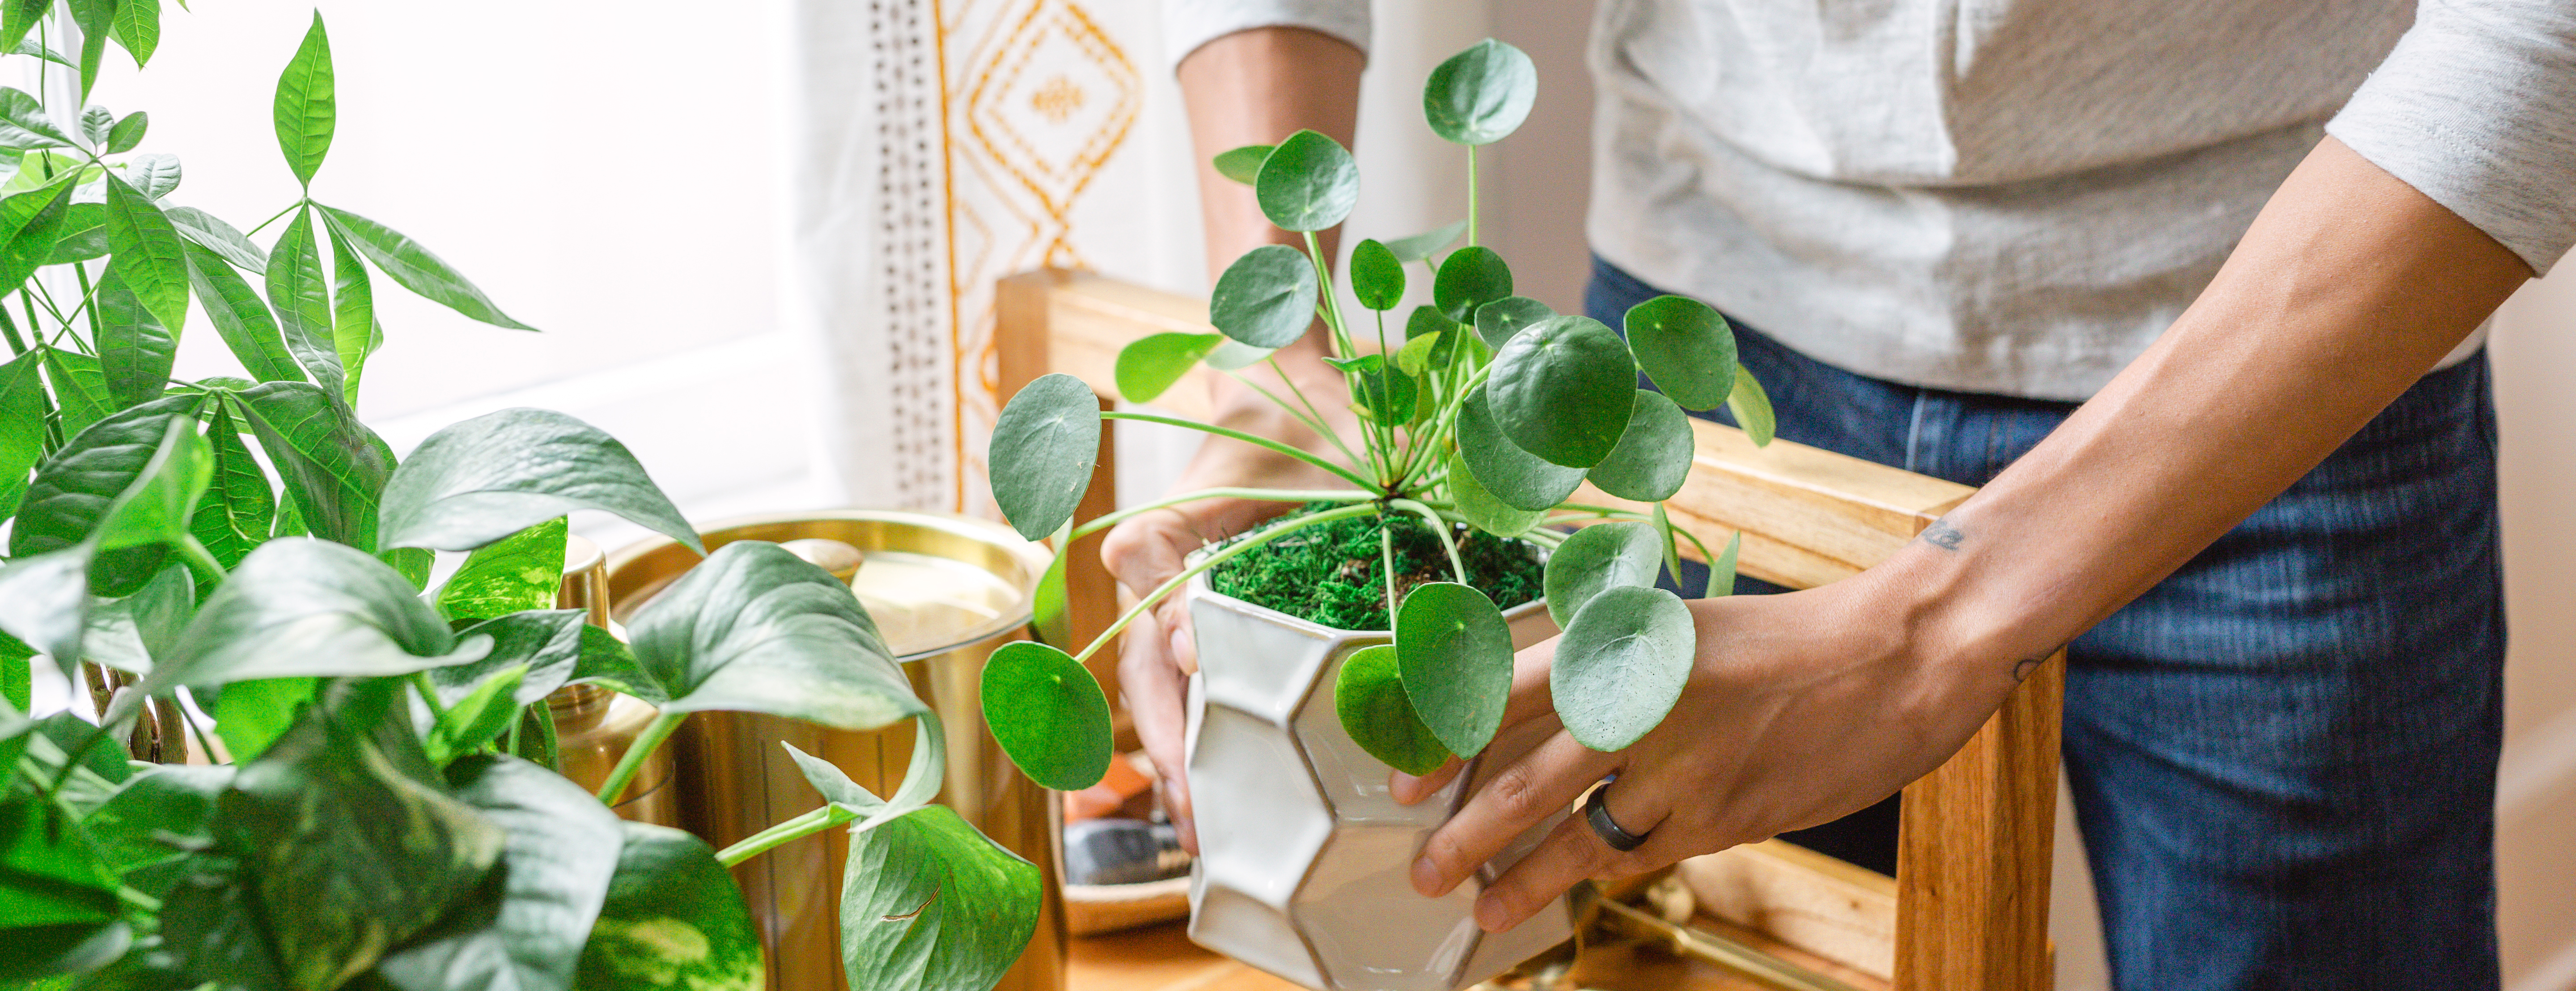 Hands surrounded by indoor plants, Chinese money plant and golden pothos plant